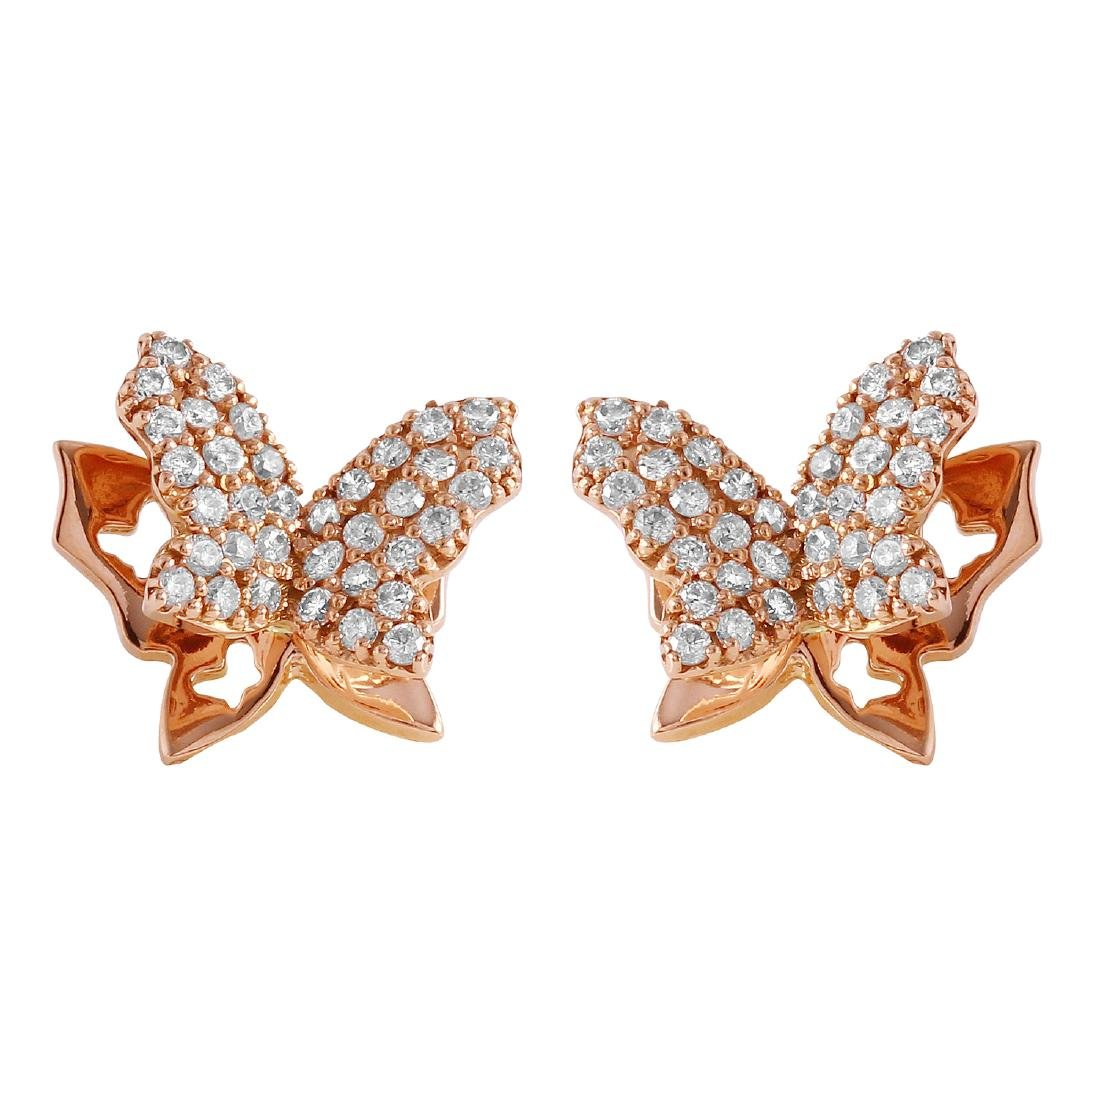 0.48 Carat Natural Diamond 18K Solid Rose Gold Earring